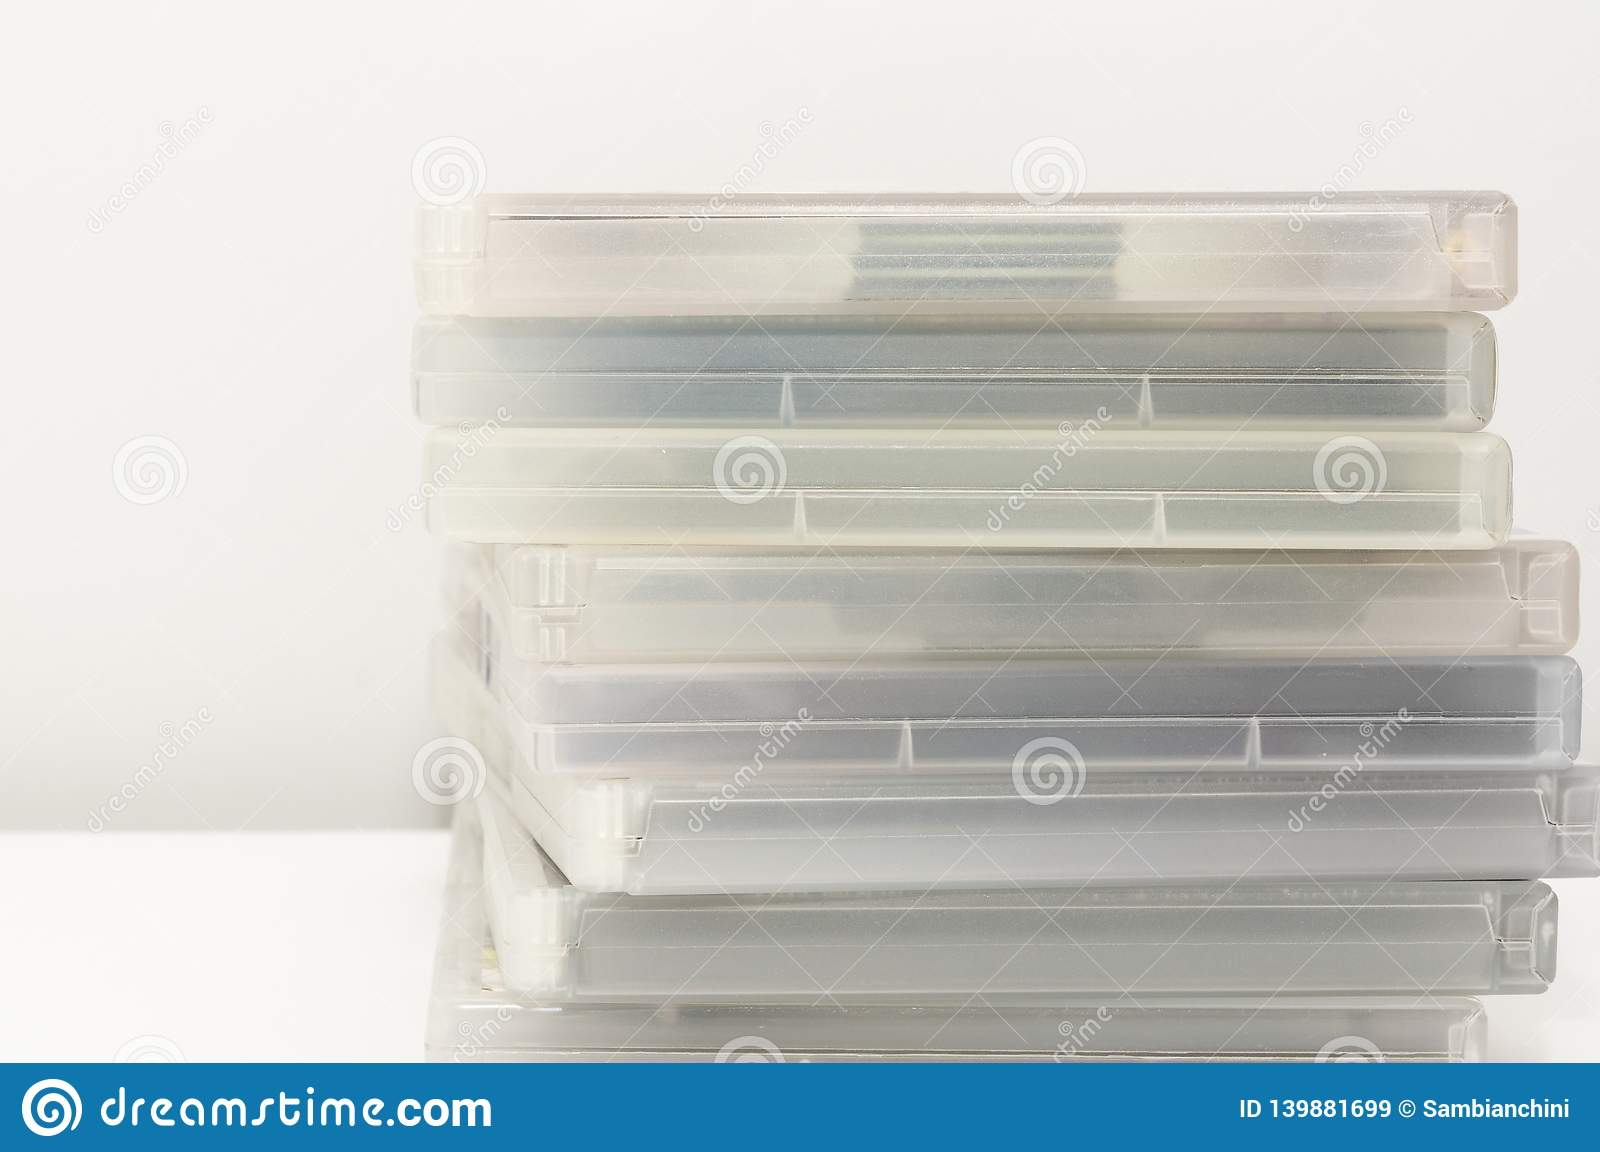 DVD Cases Stacked On Surface